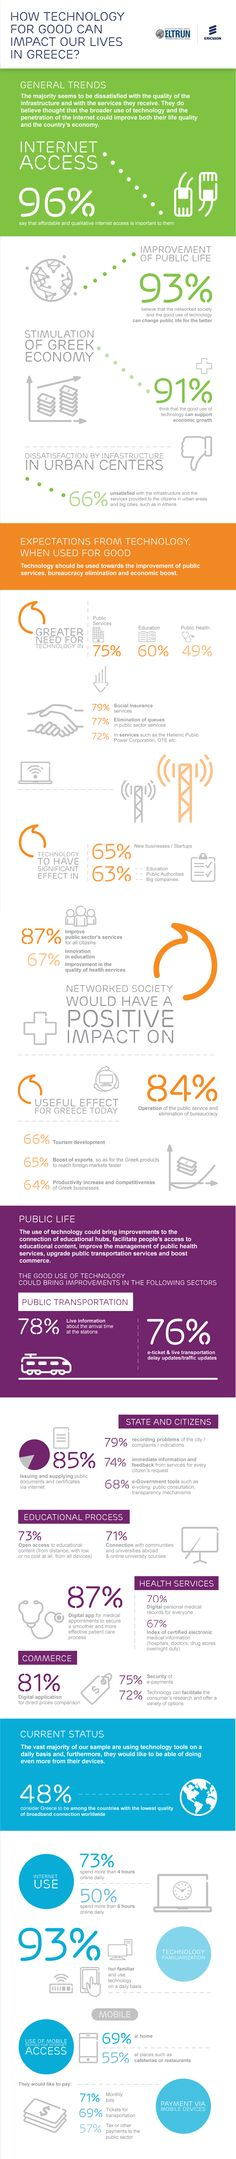 Infographic for Ericsson's survey on how technology for good can impact our lives in Greece. English version